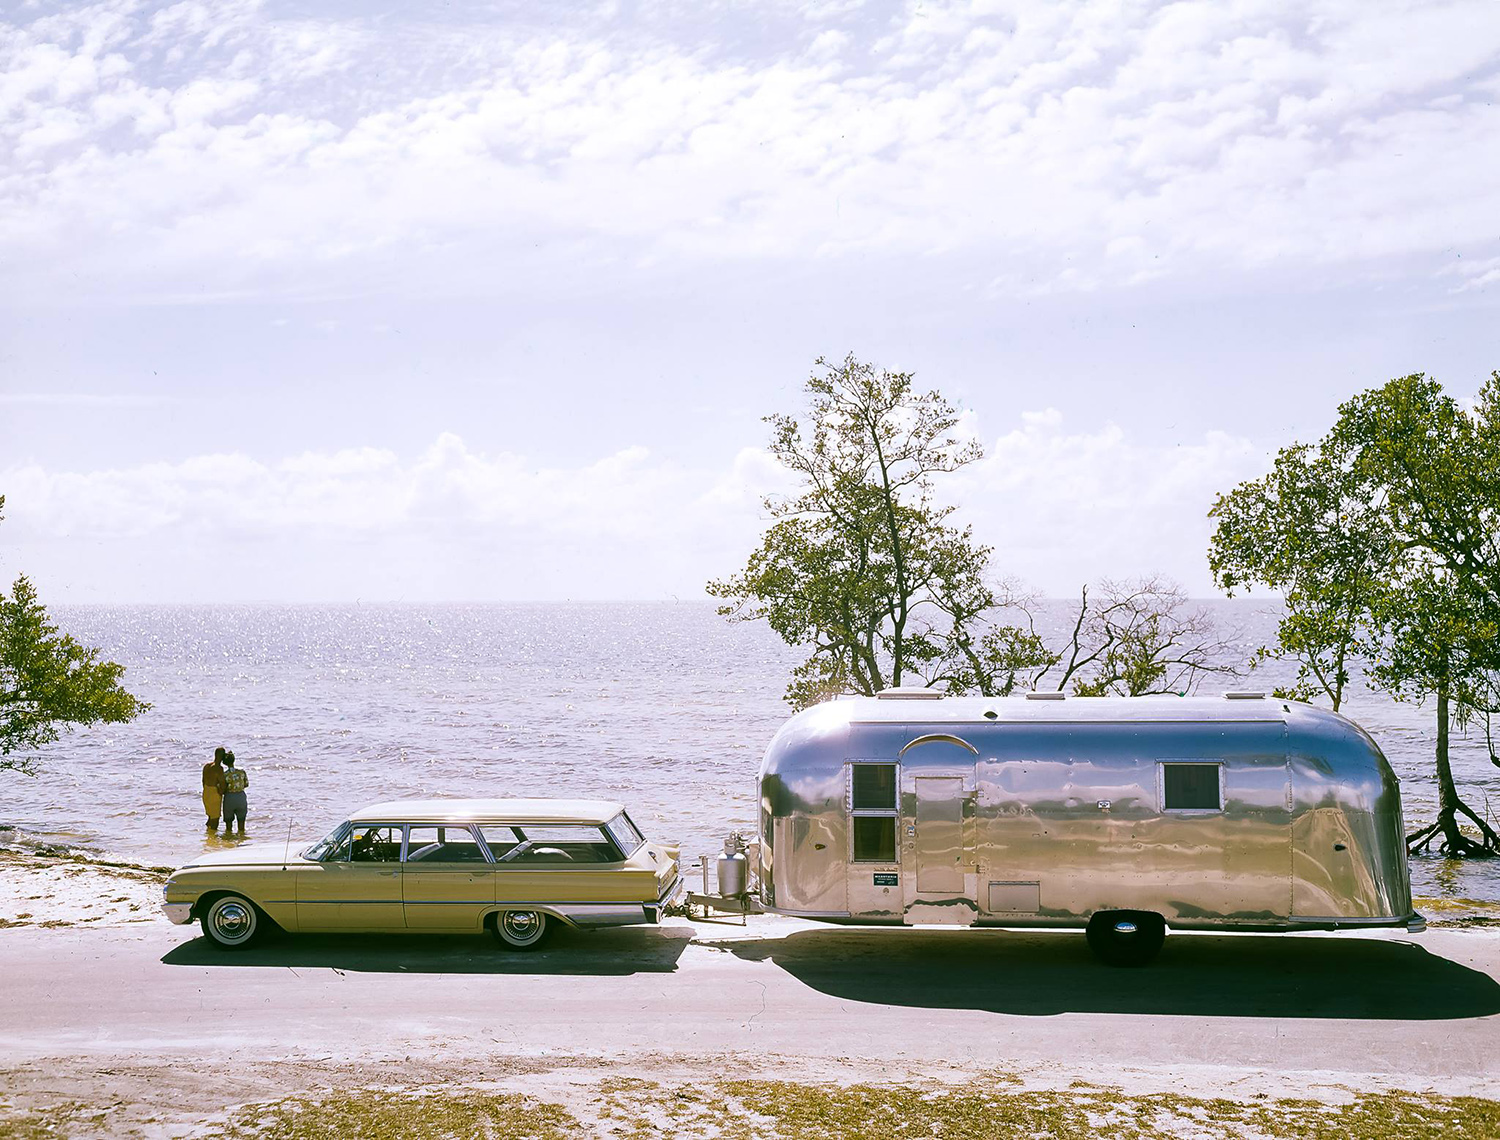 Archival footage of the airstream being towed